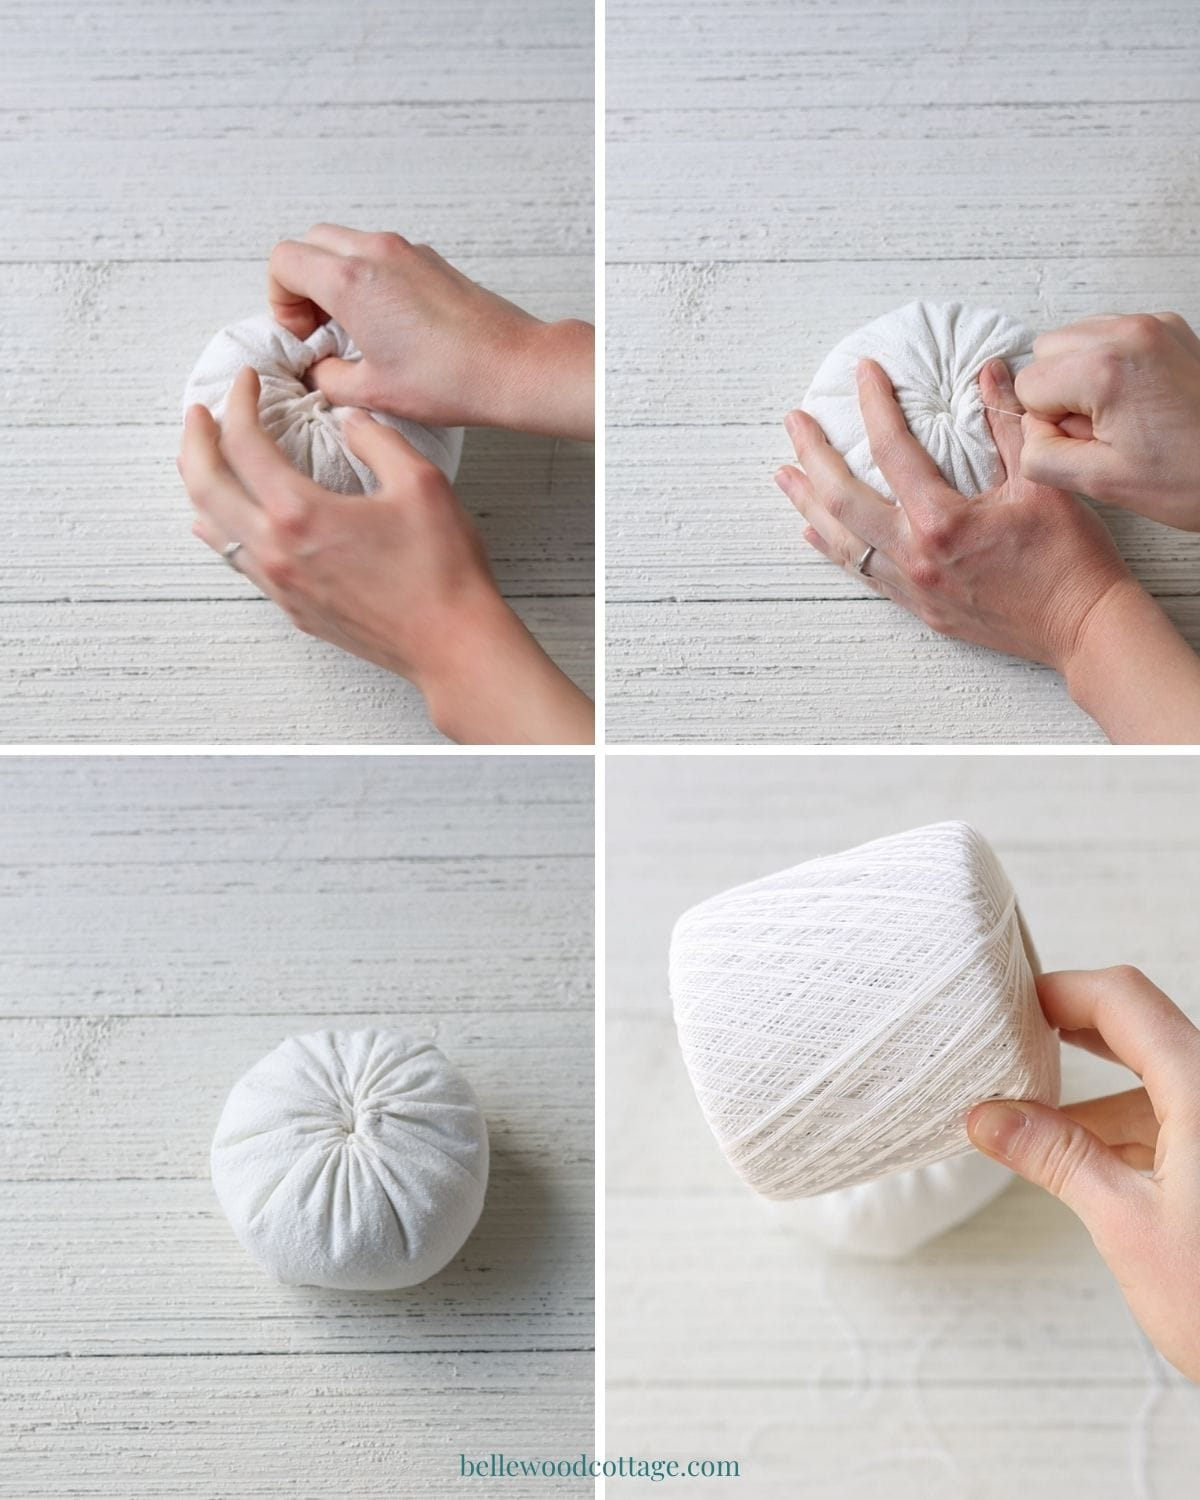 Step by step how to make drop cloth pumpkins - sewing closed the now stuffed pumpkin.